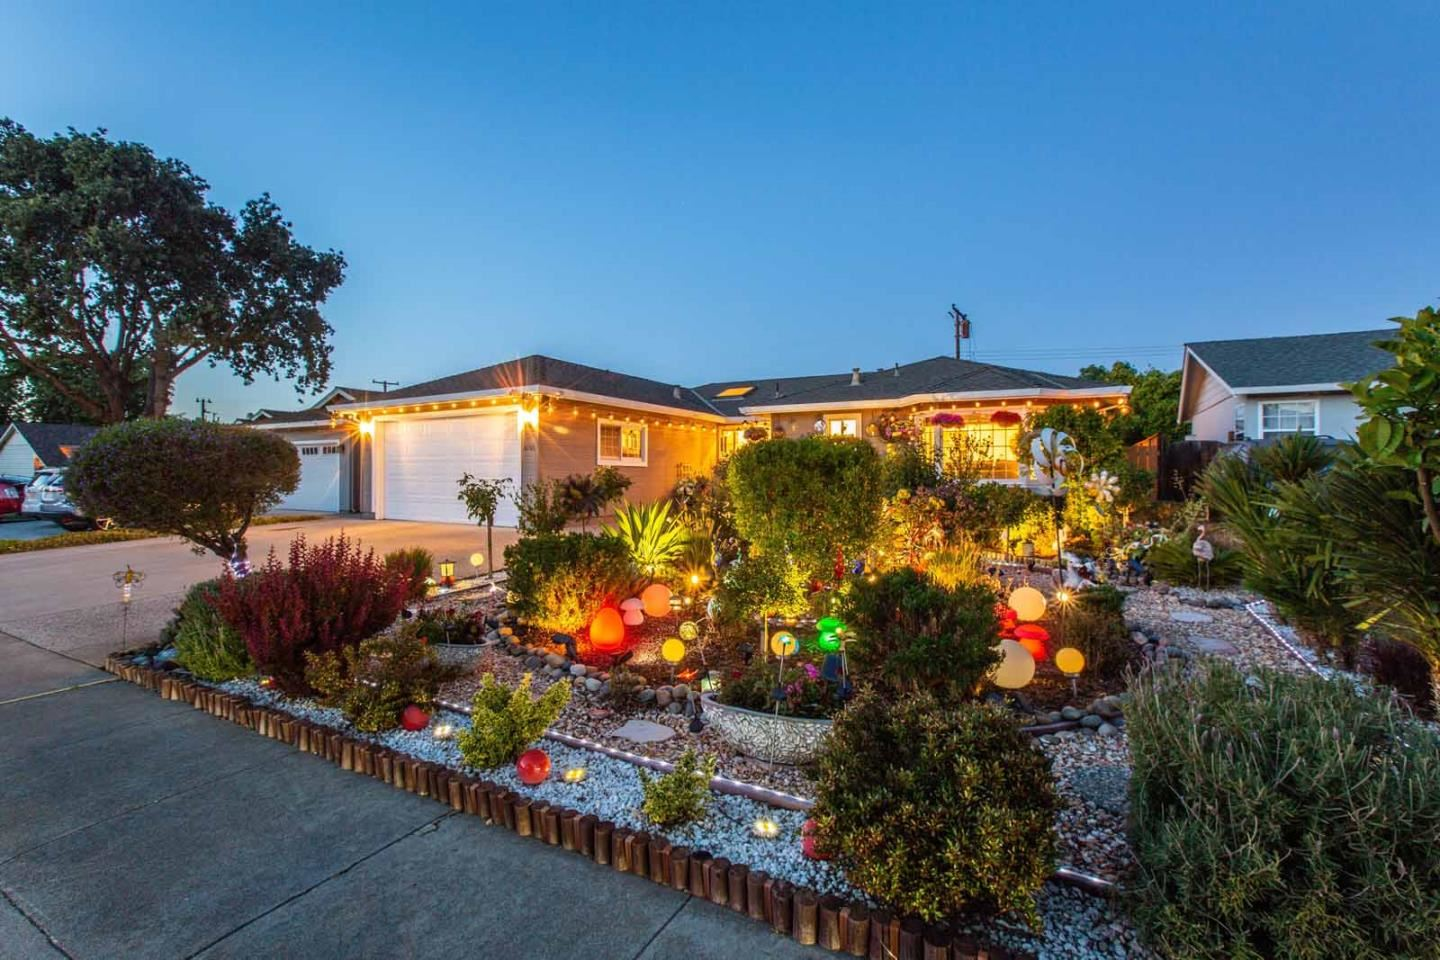 Photo for 10786 South Blaney Avenue, CUPERTINO, CA 95014 (MLS # ML81847644)